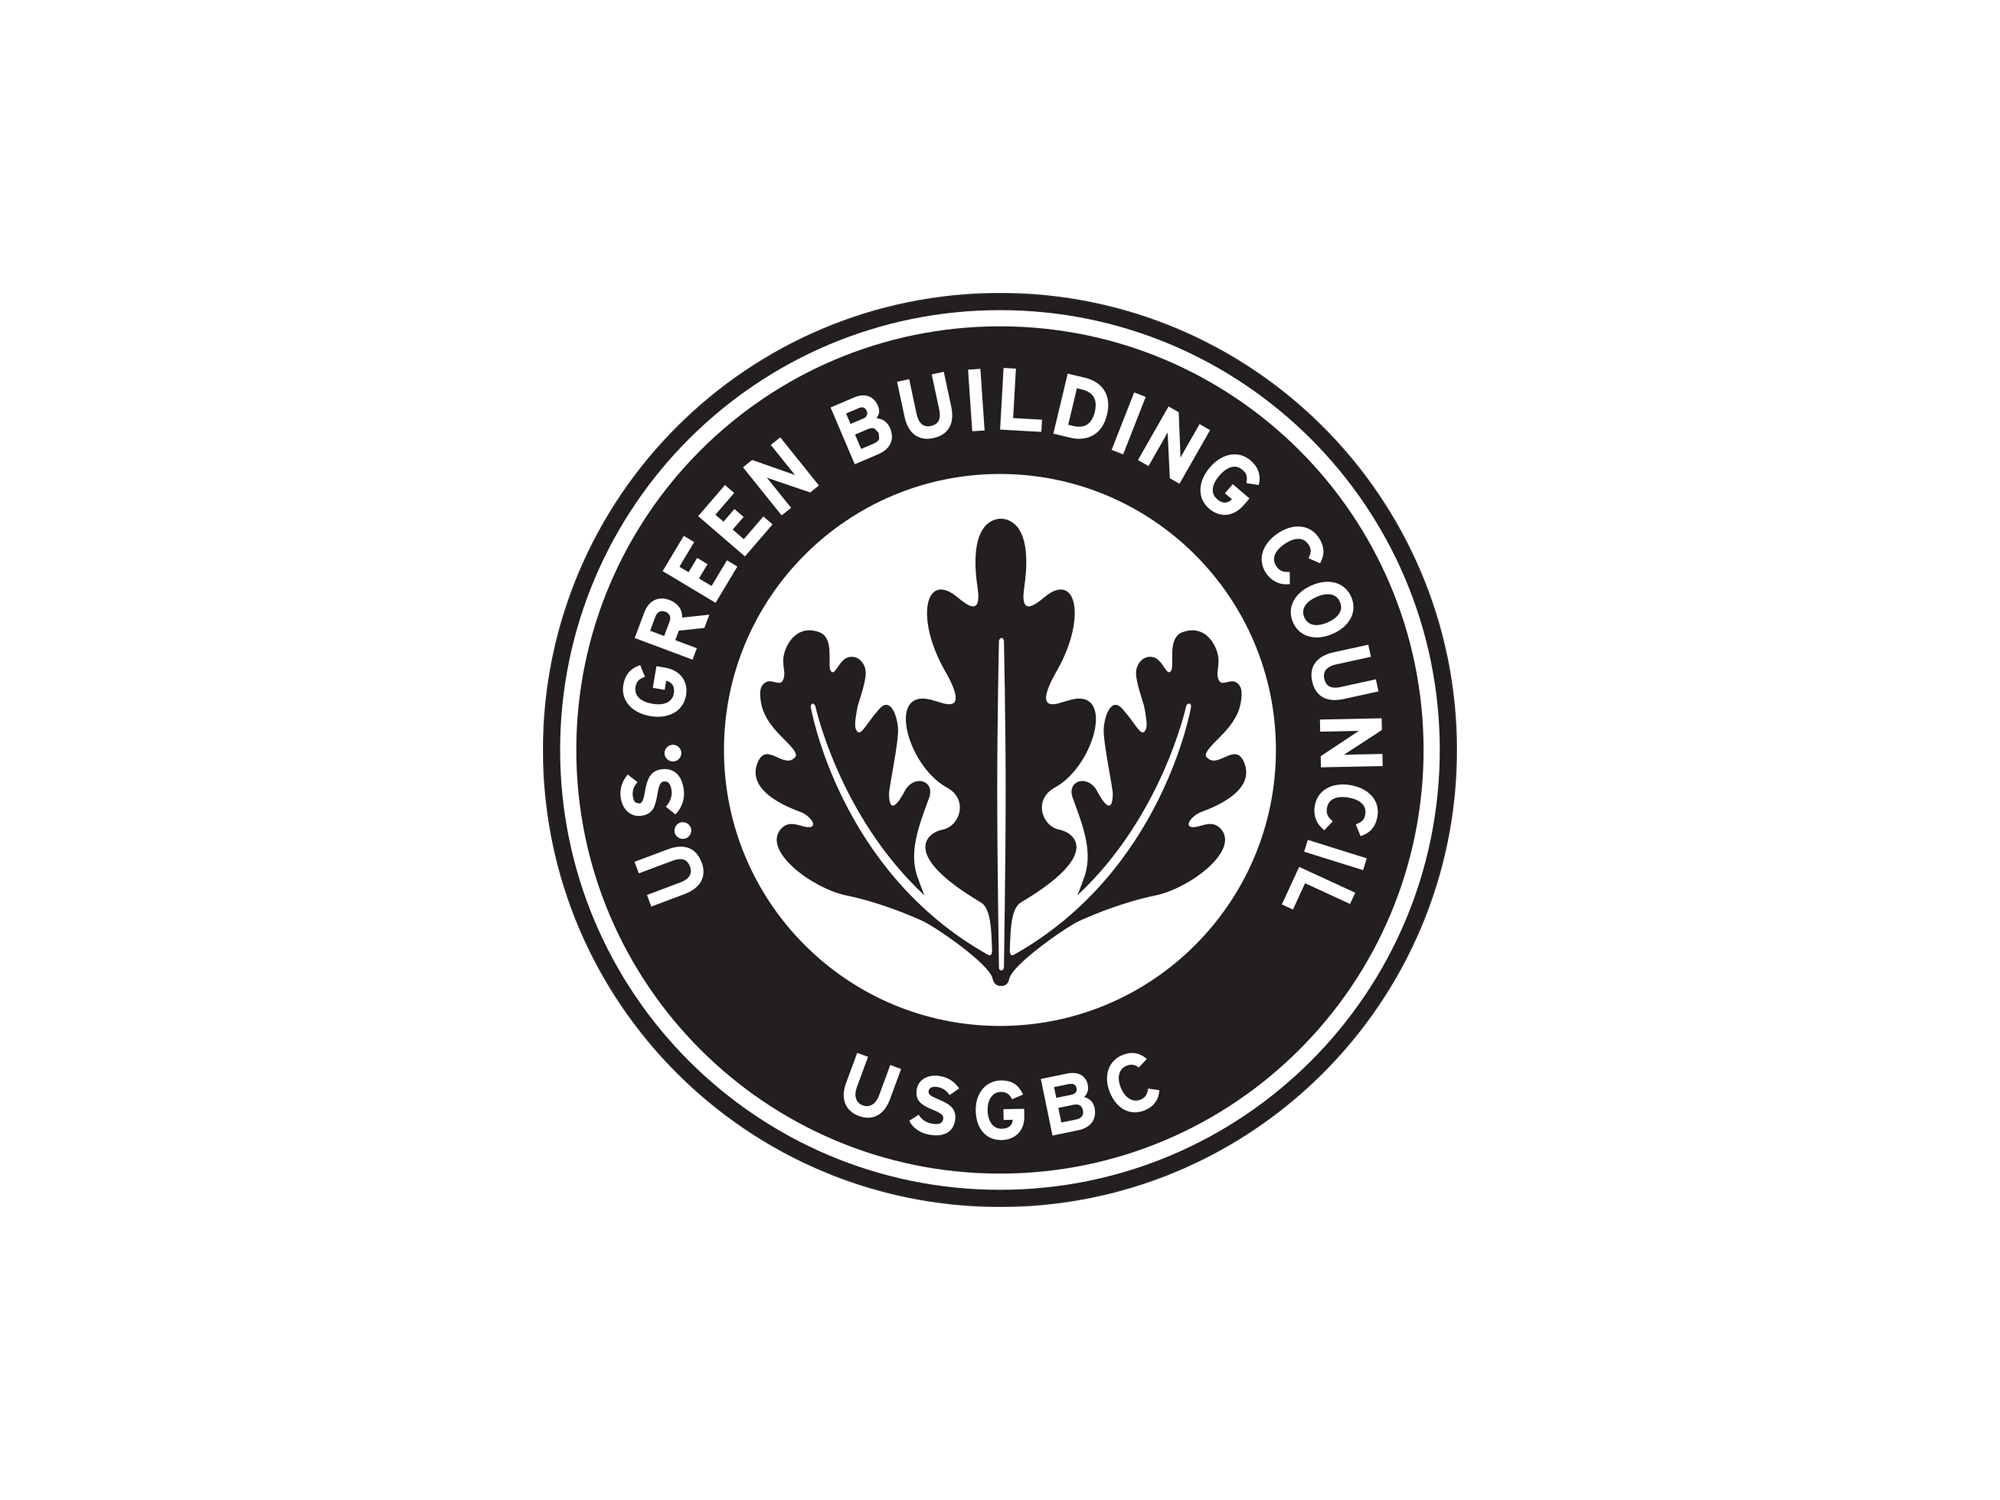 LEED (Leadership in Energy and Environmental Design)